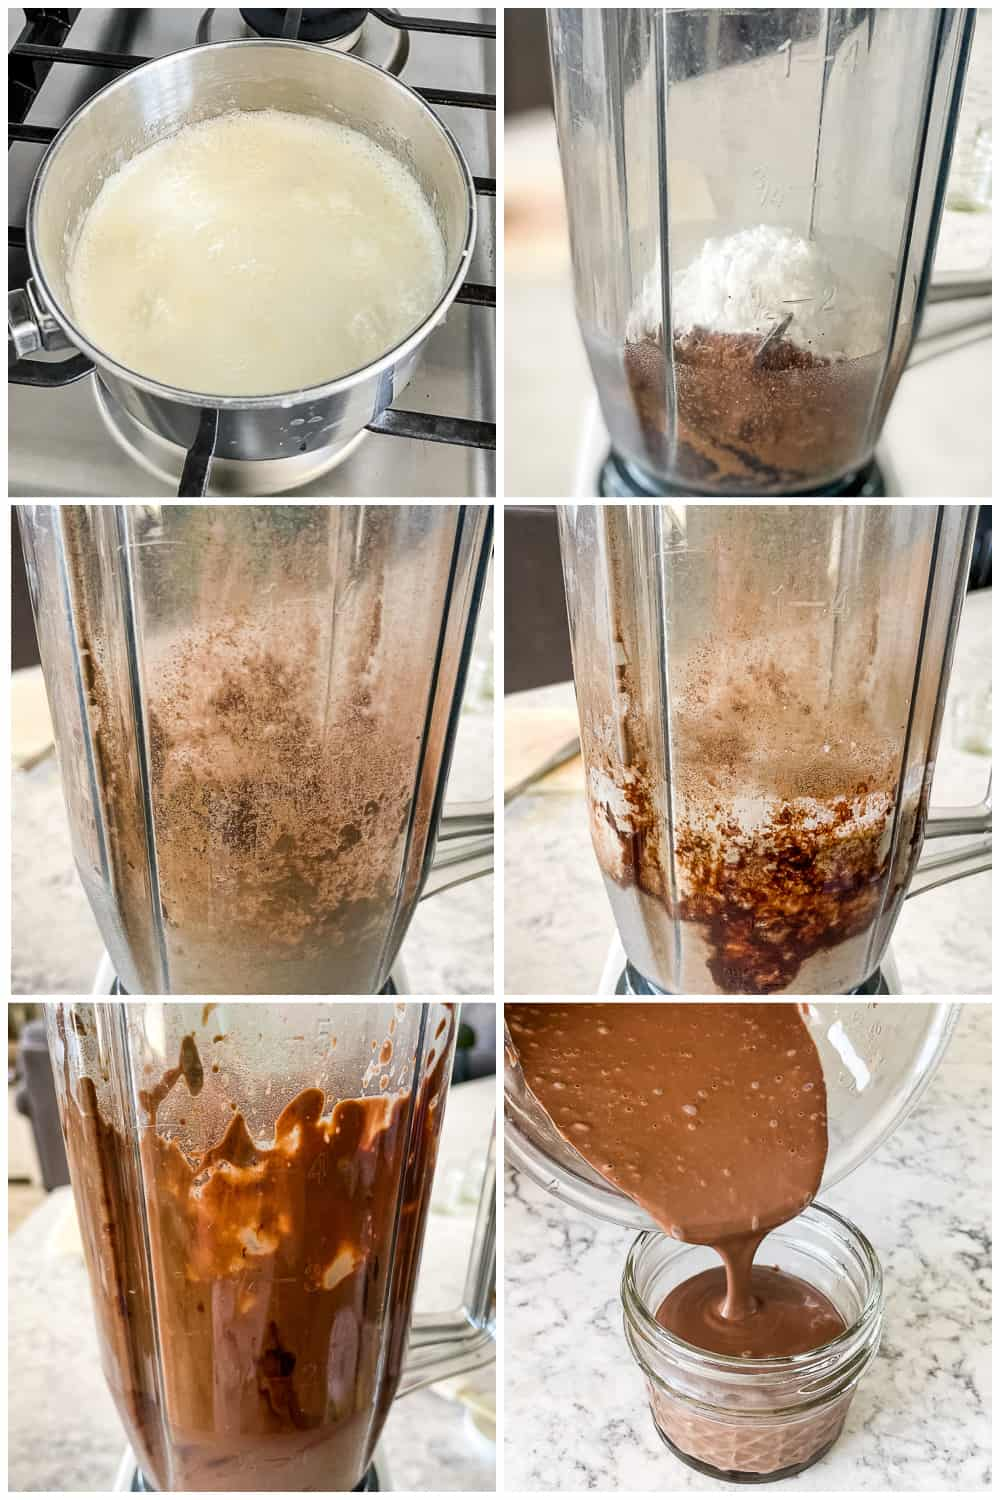 instructions for making blender chocolate mousse